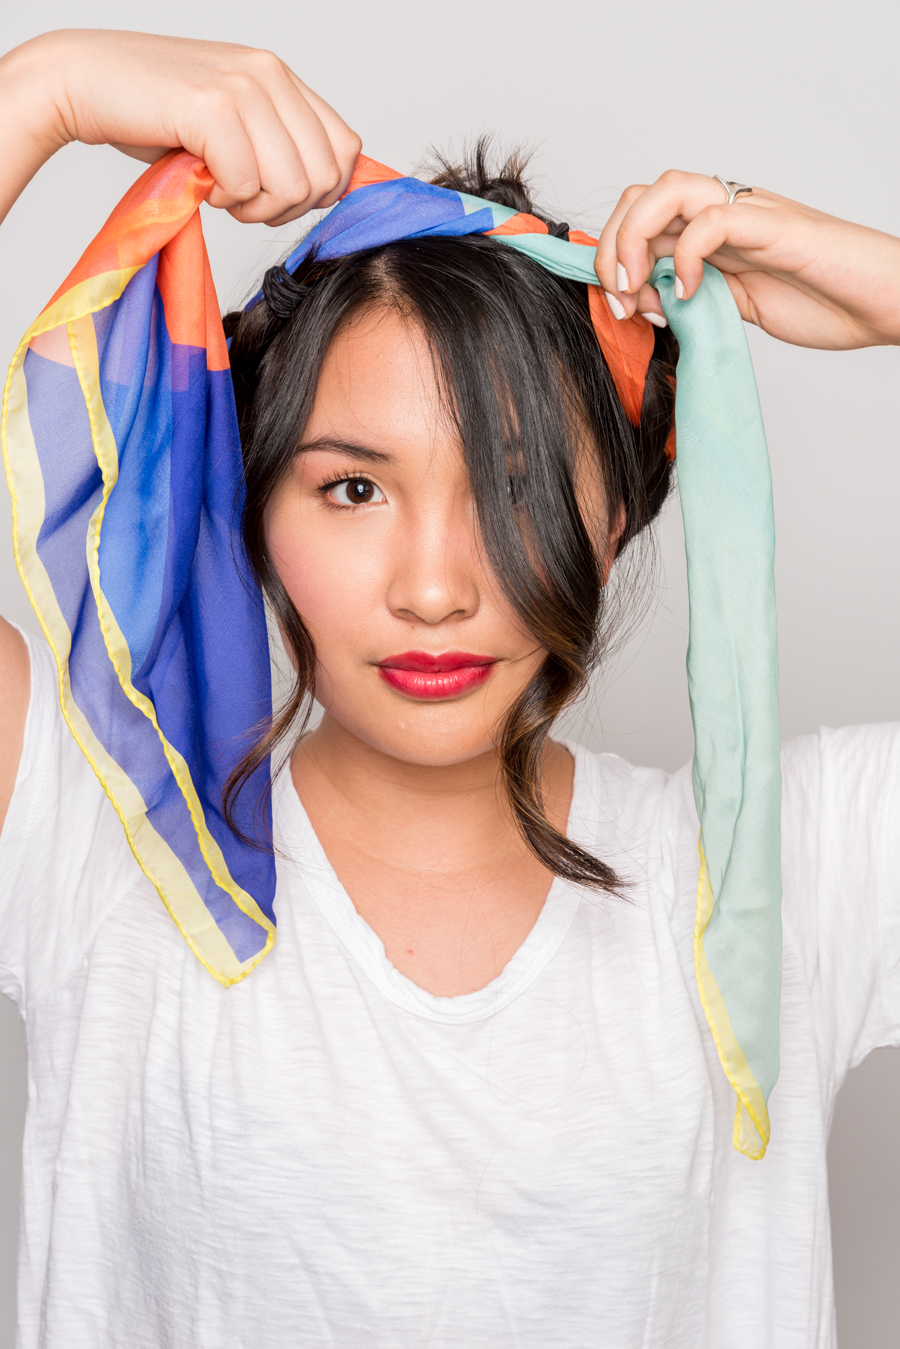 How To Use A Scarf For Stylish Summer Hair スカーフを使った簡単ヘアアレンジ 11